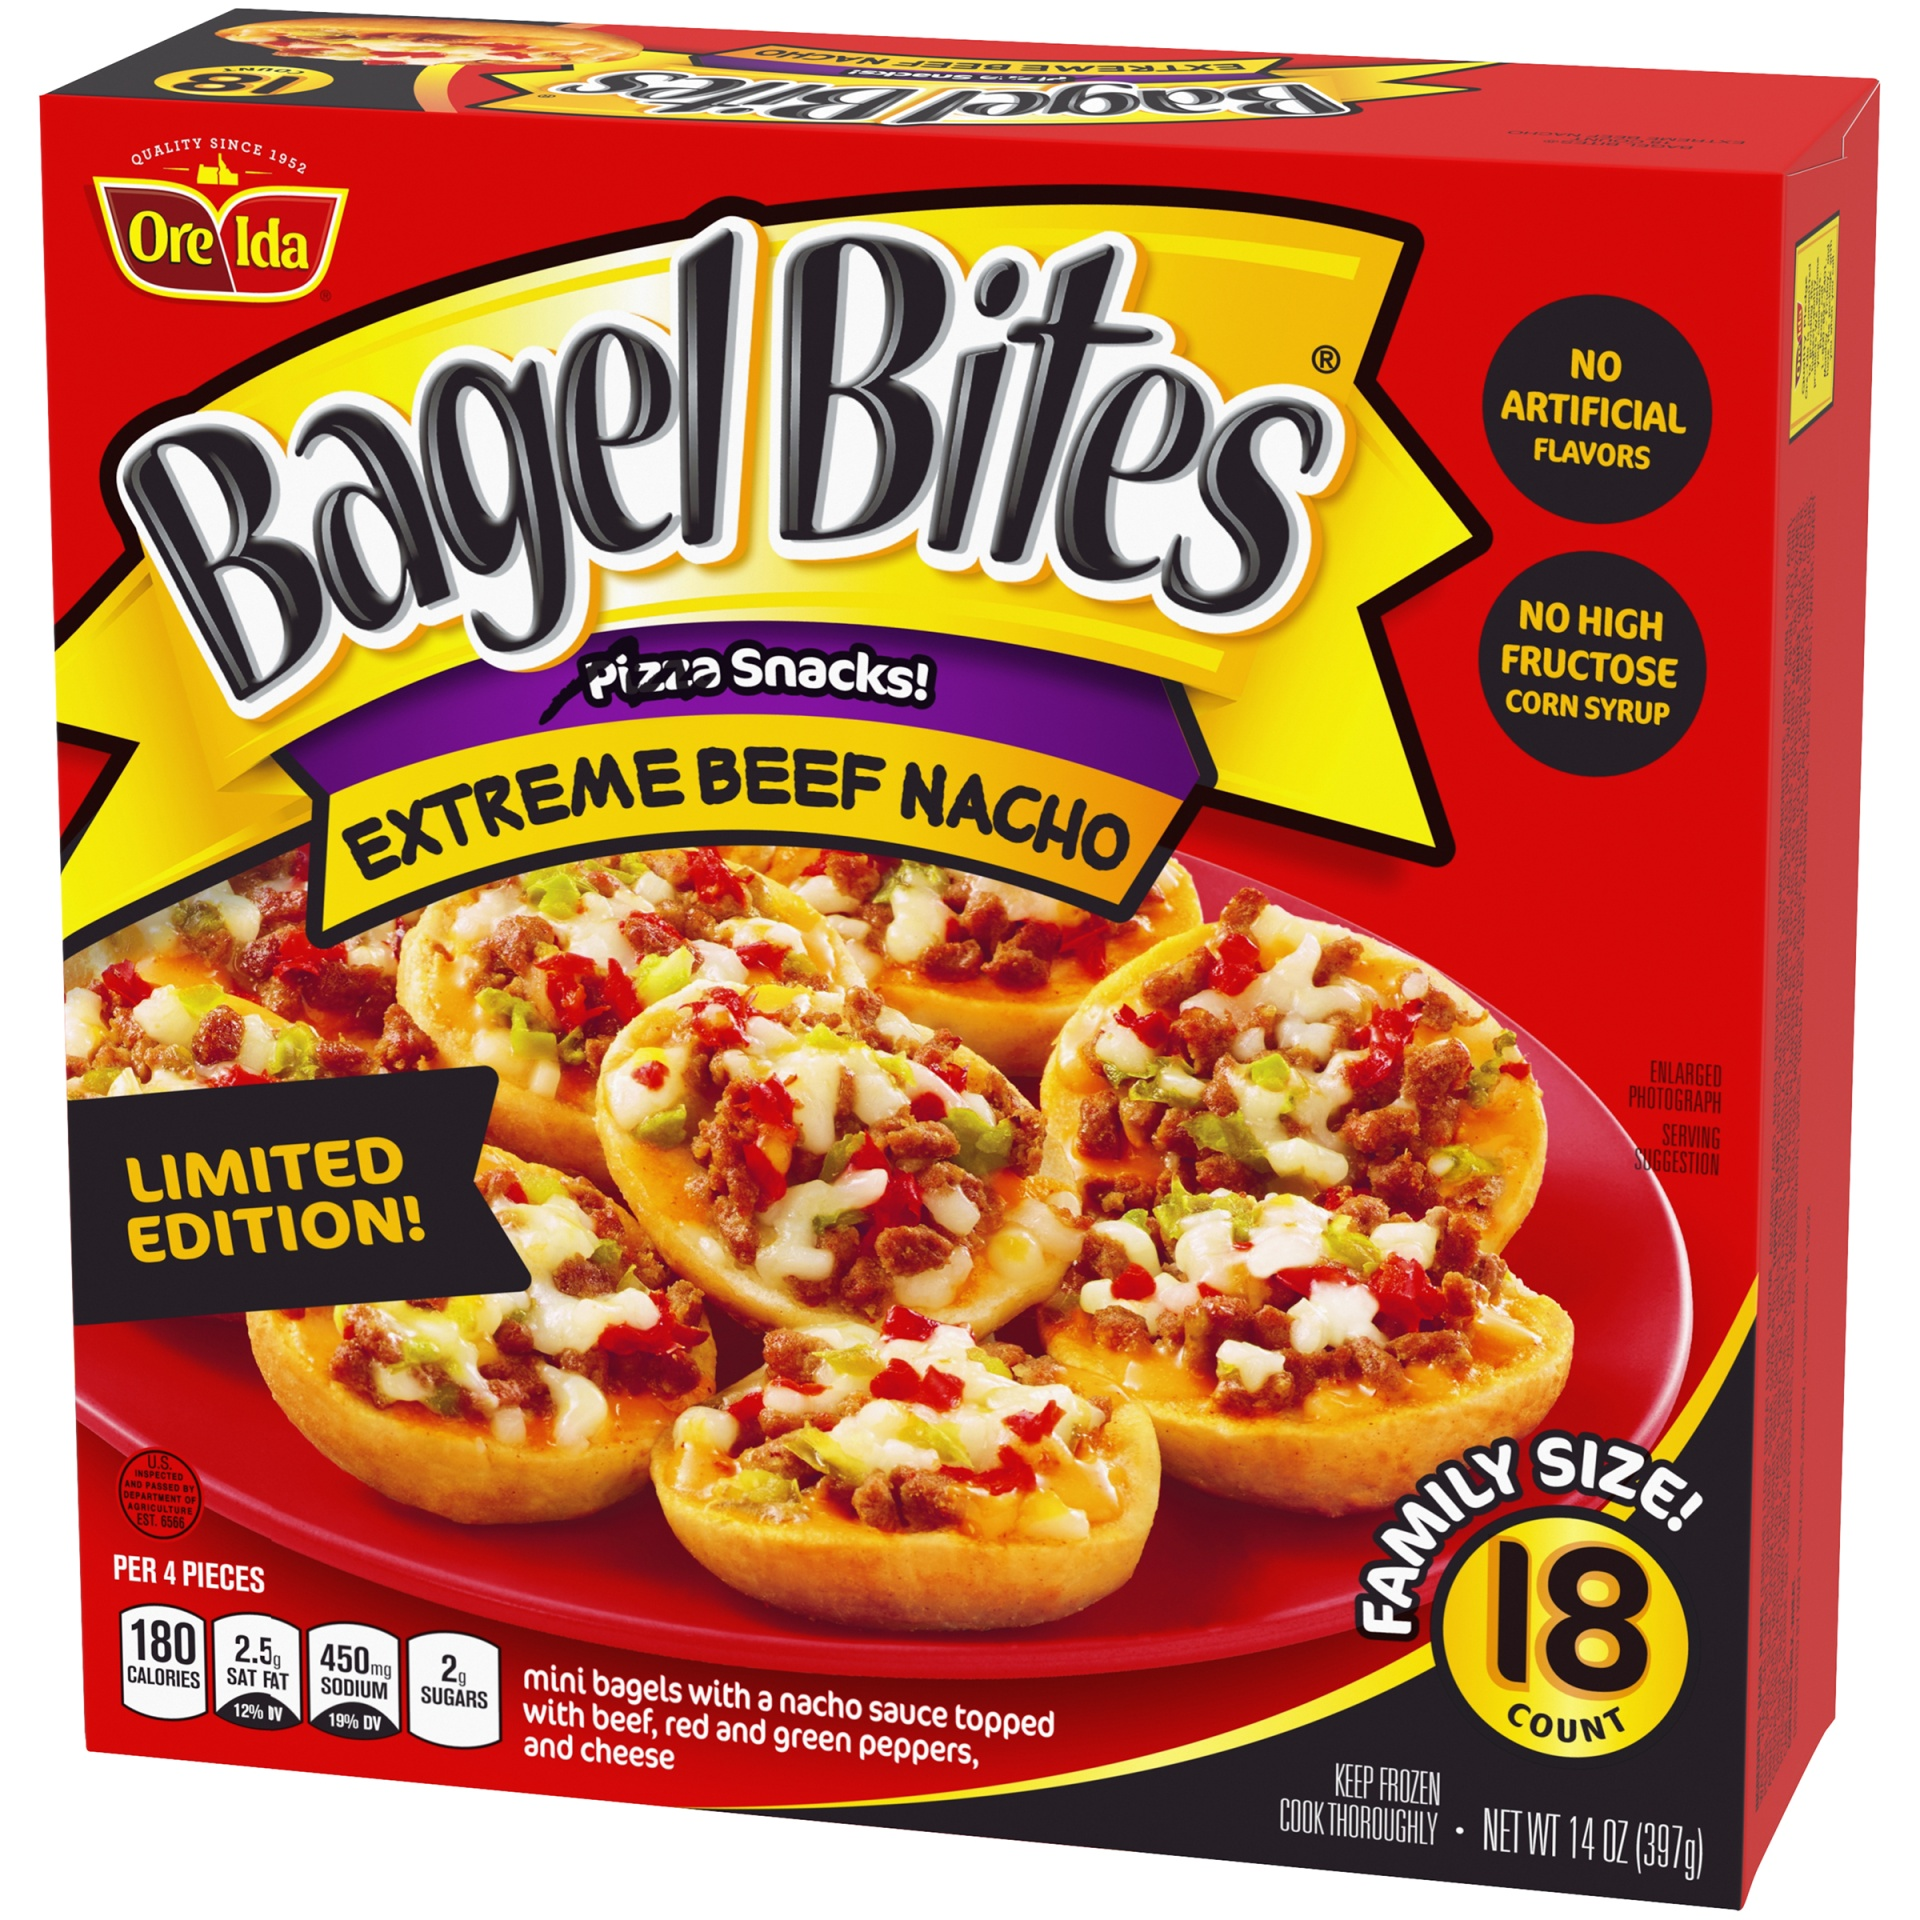 slide 3 of 6, Bagel Bites Frozen Pizza & Appetizers Extreme Beef Nacho,